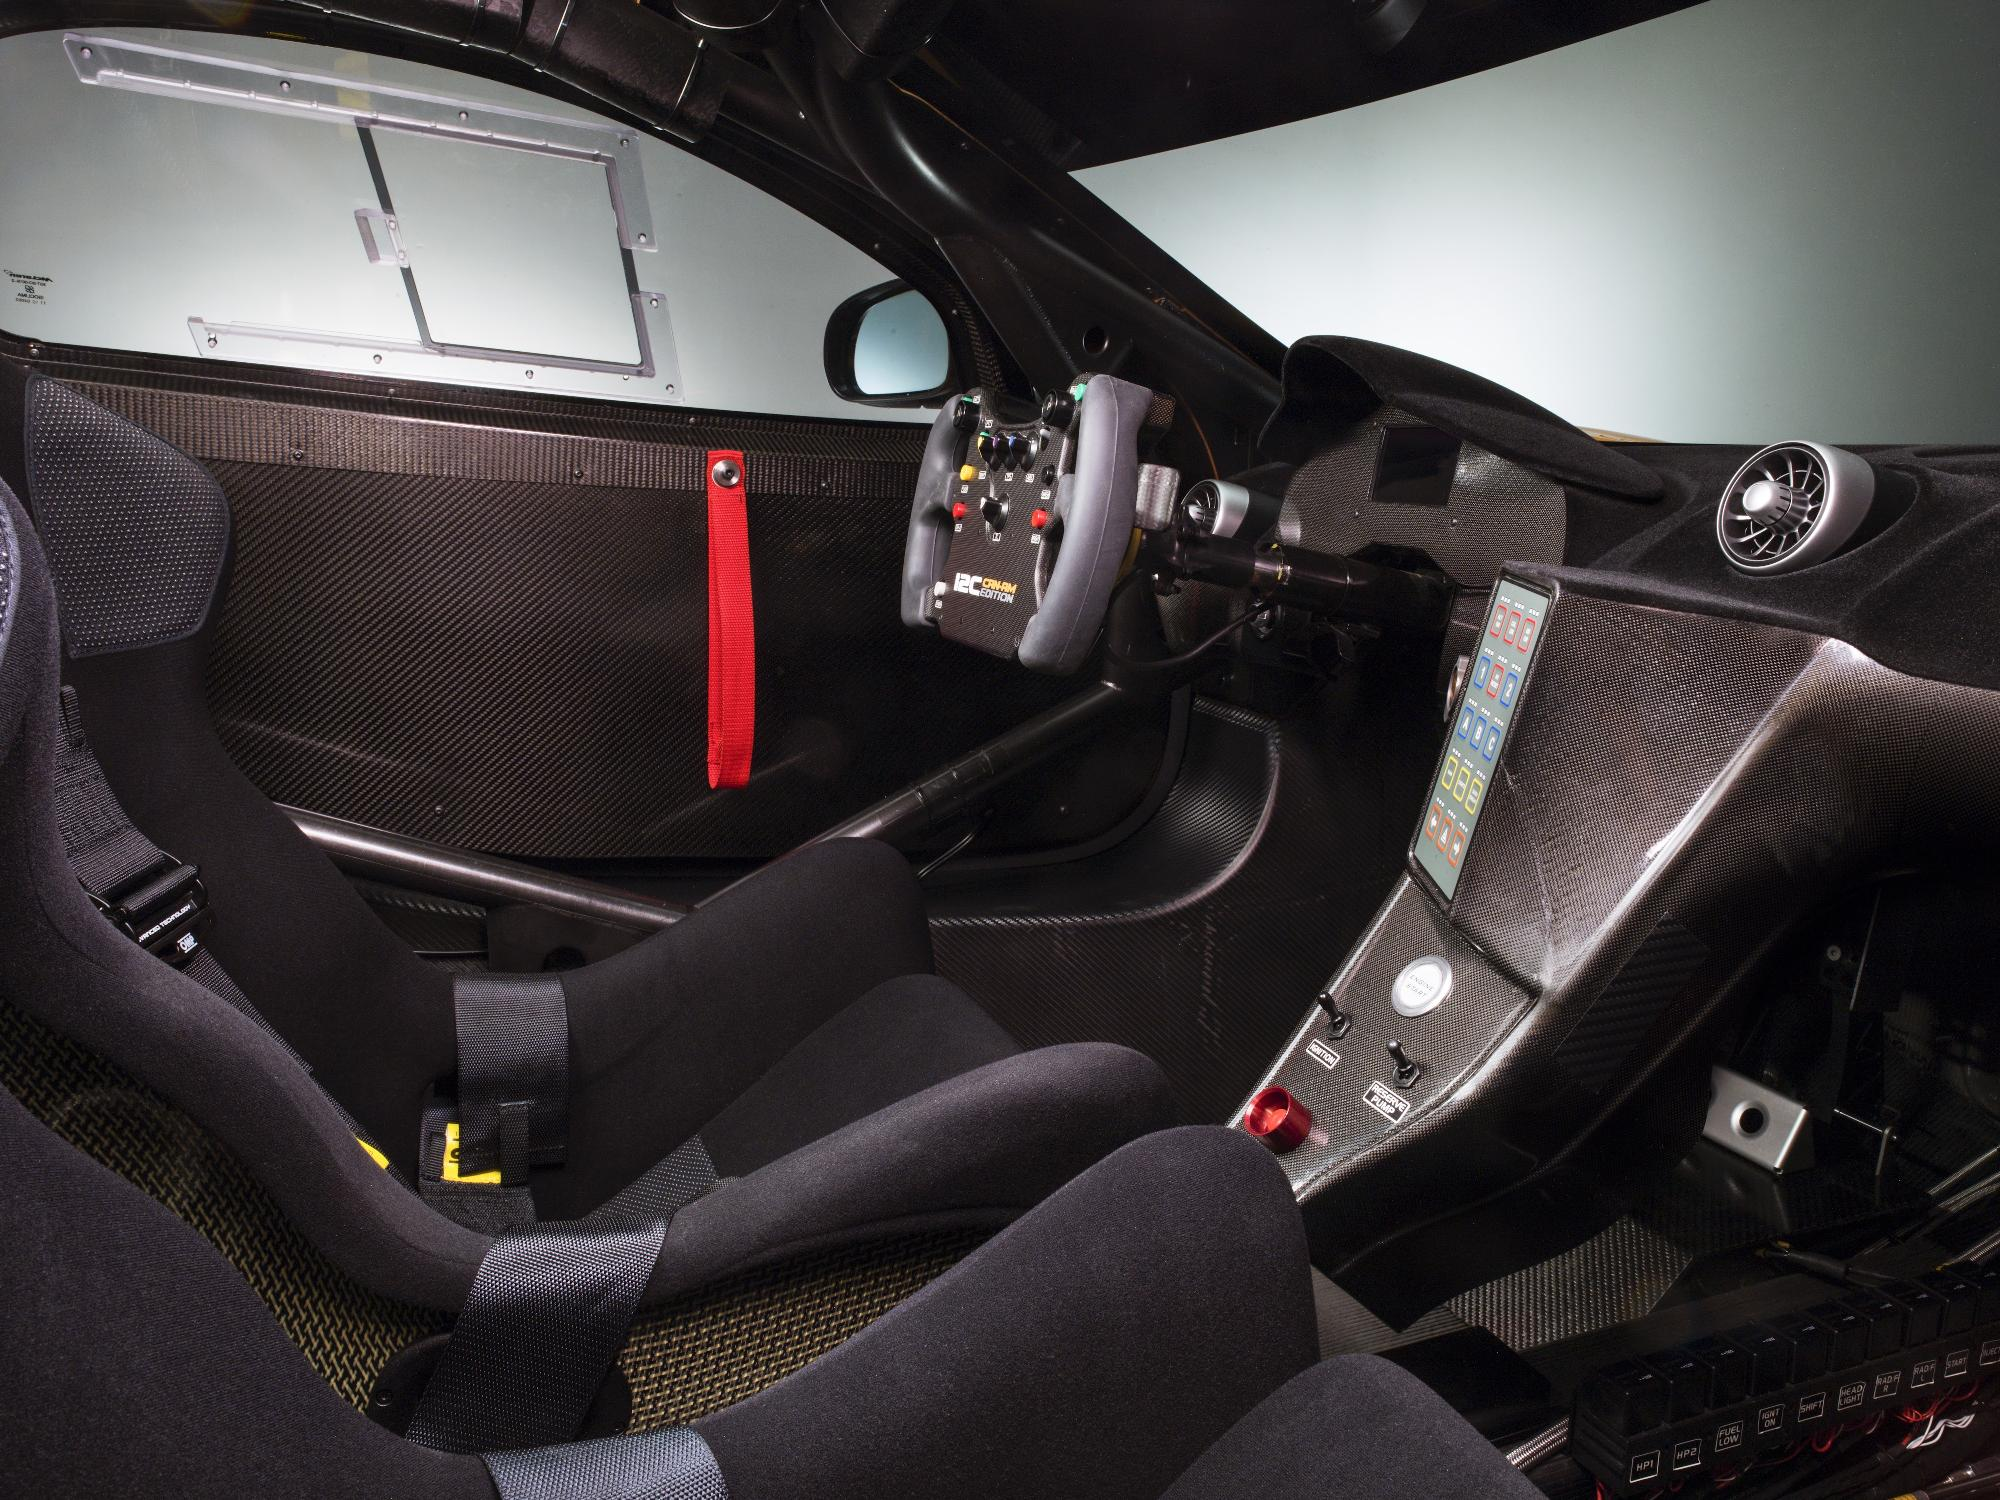 McLaren MP4-12C Can-Am Interior